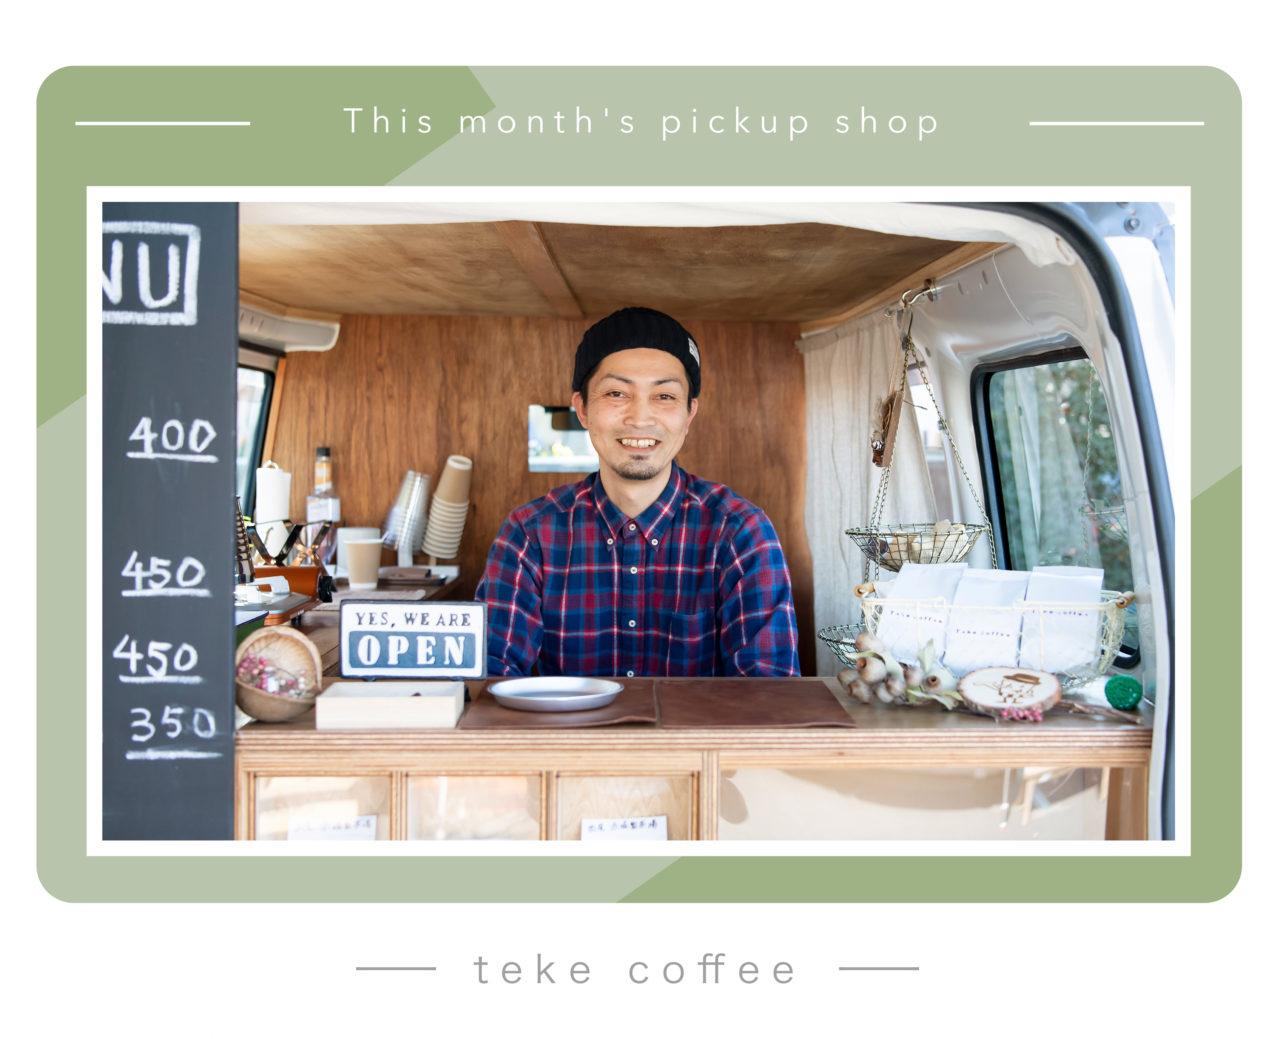 data_teke coffee